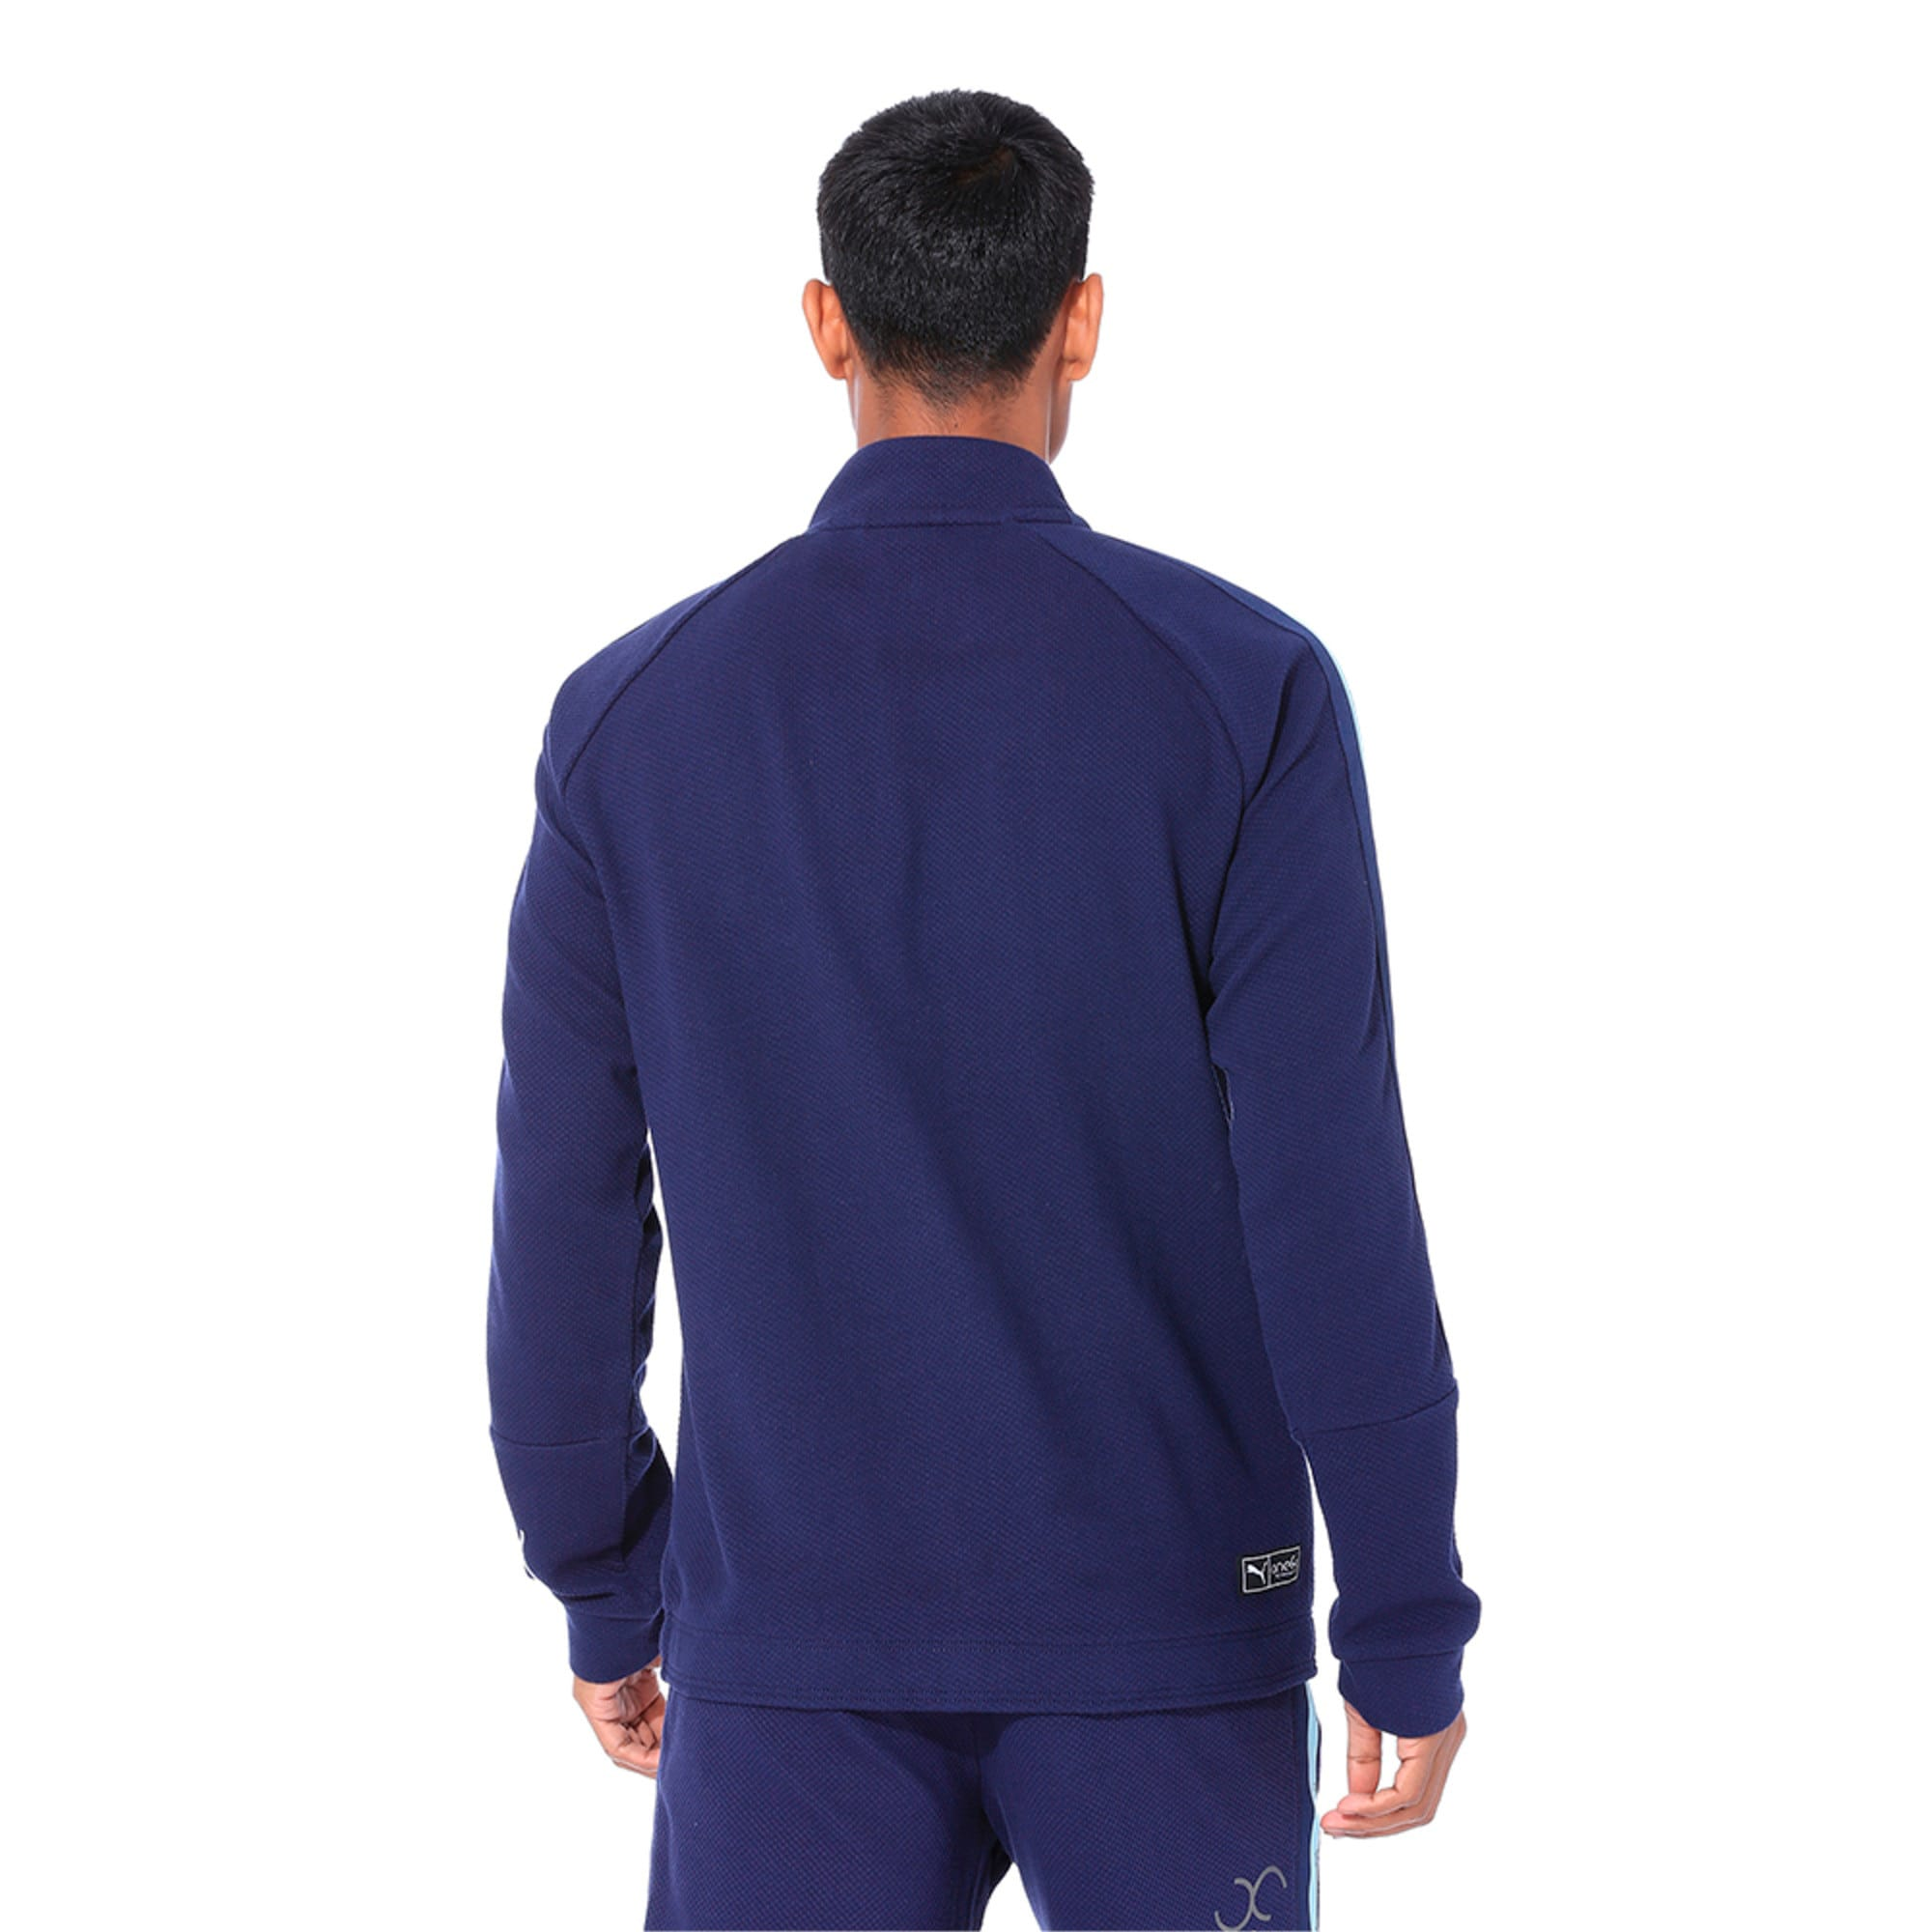 Thumbnail 5 of VK Sweat Jacket, Peacoat, medium-IND